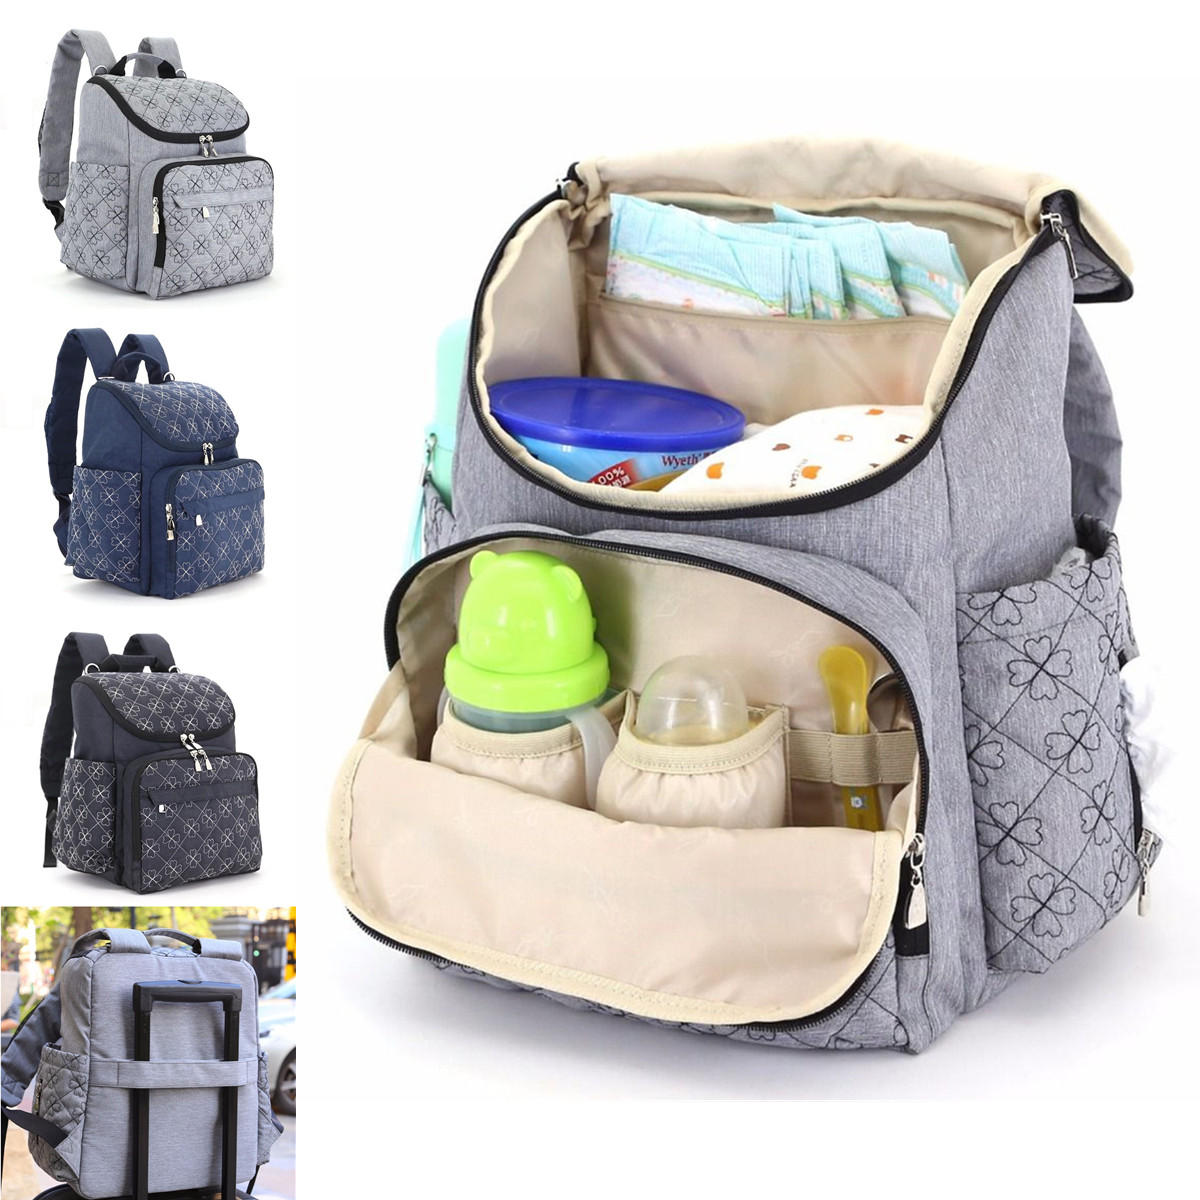 892897f80 IPRee™ Travel Backpack Mummy Maternity Baby Diaper Bag Nappy Organizer  Nursing Pouch - Dark Blue COD